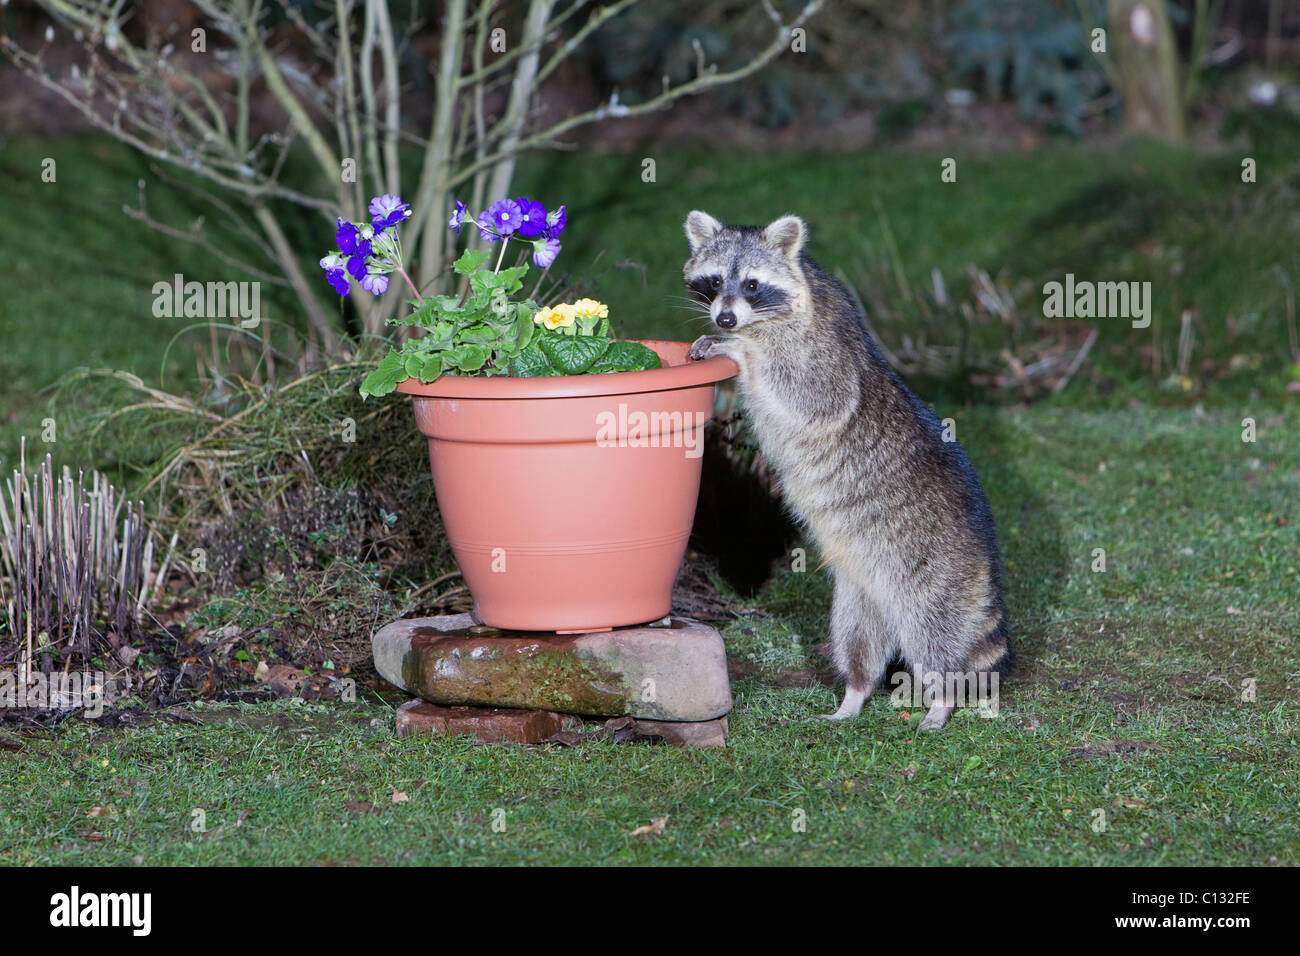 Raccoon (Procyon lotor), searching for food in garden plant pot - Stock Image